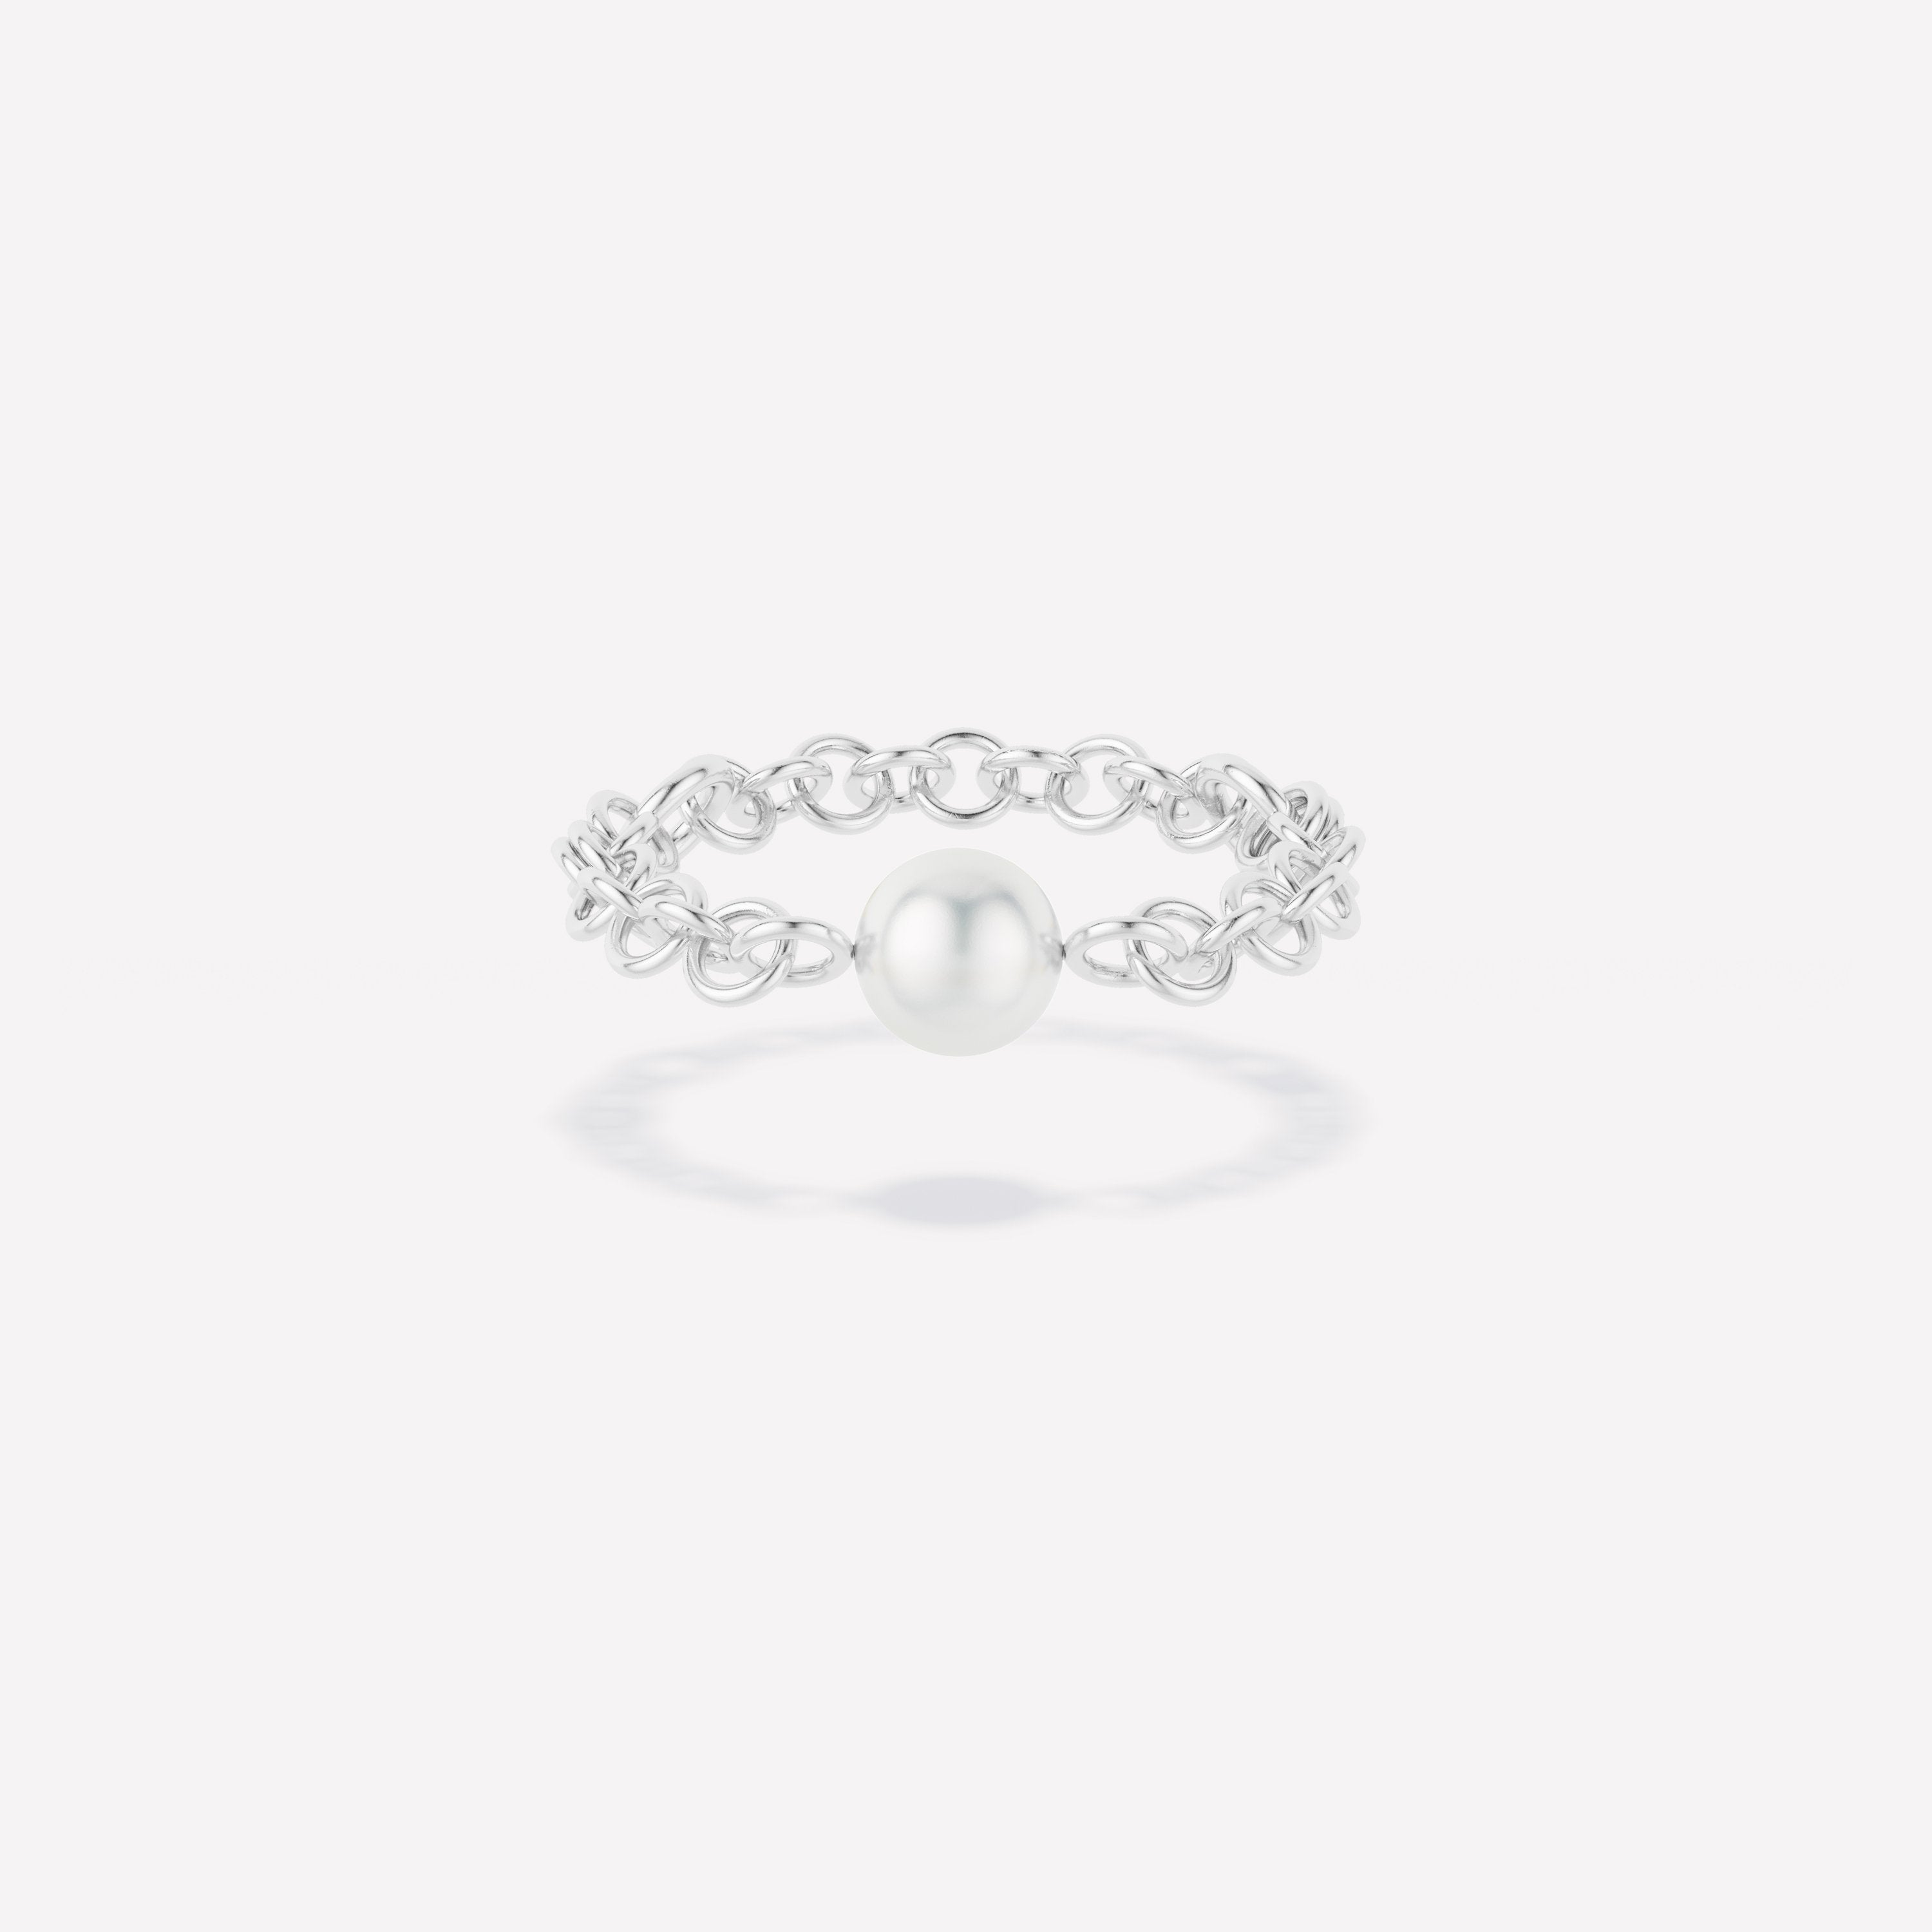 Akoya Gravity Chain Ring - Akoya Gravity Chain Ring Silver / Not sure of my size